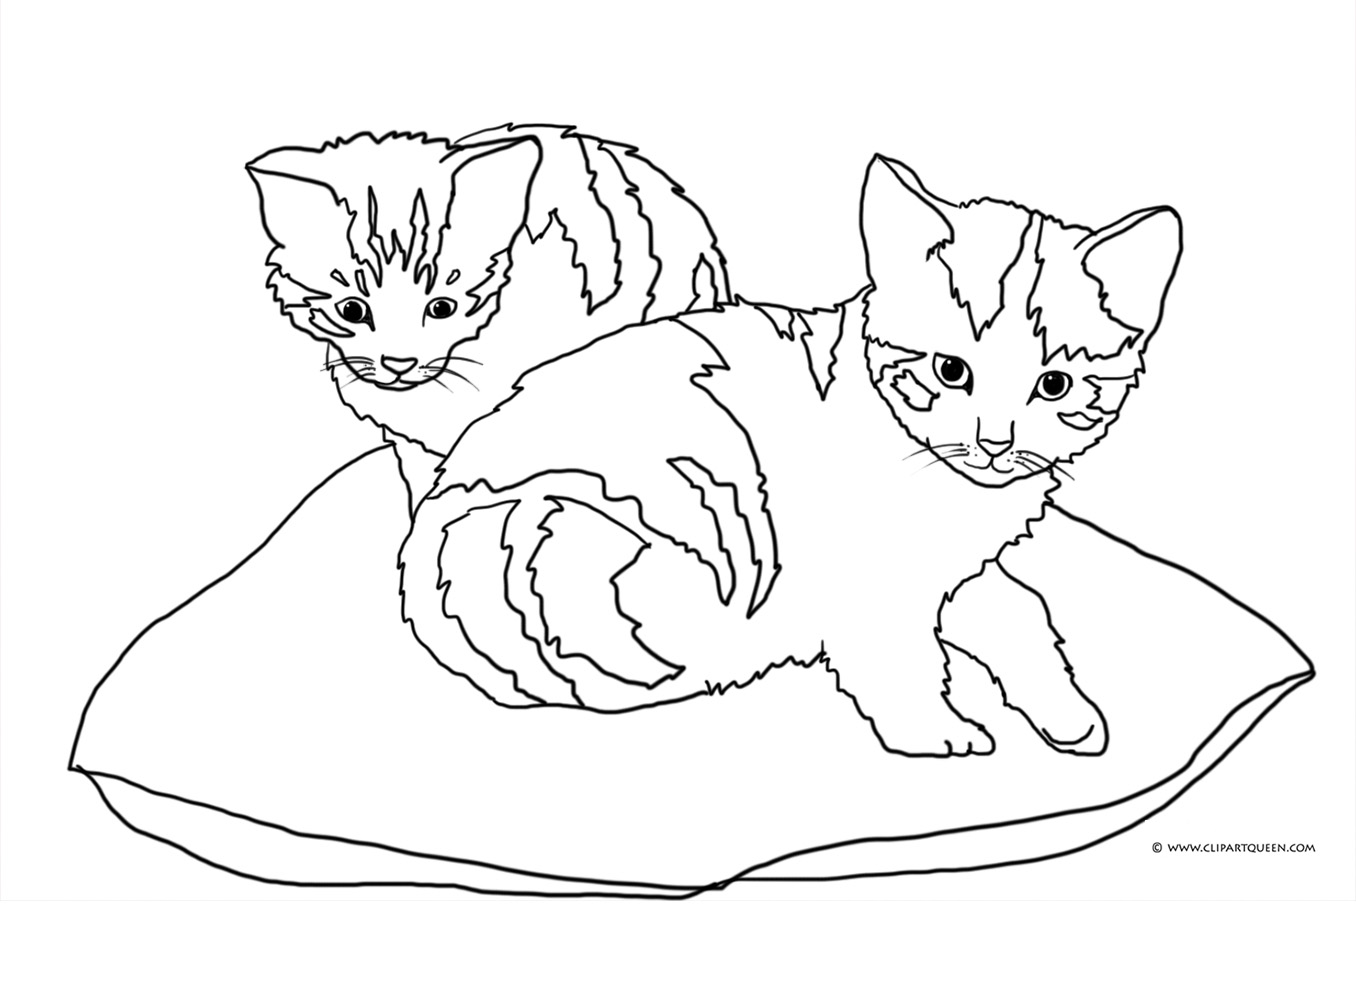 Cat Black And White Drawing At Getdrawings